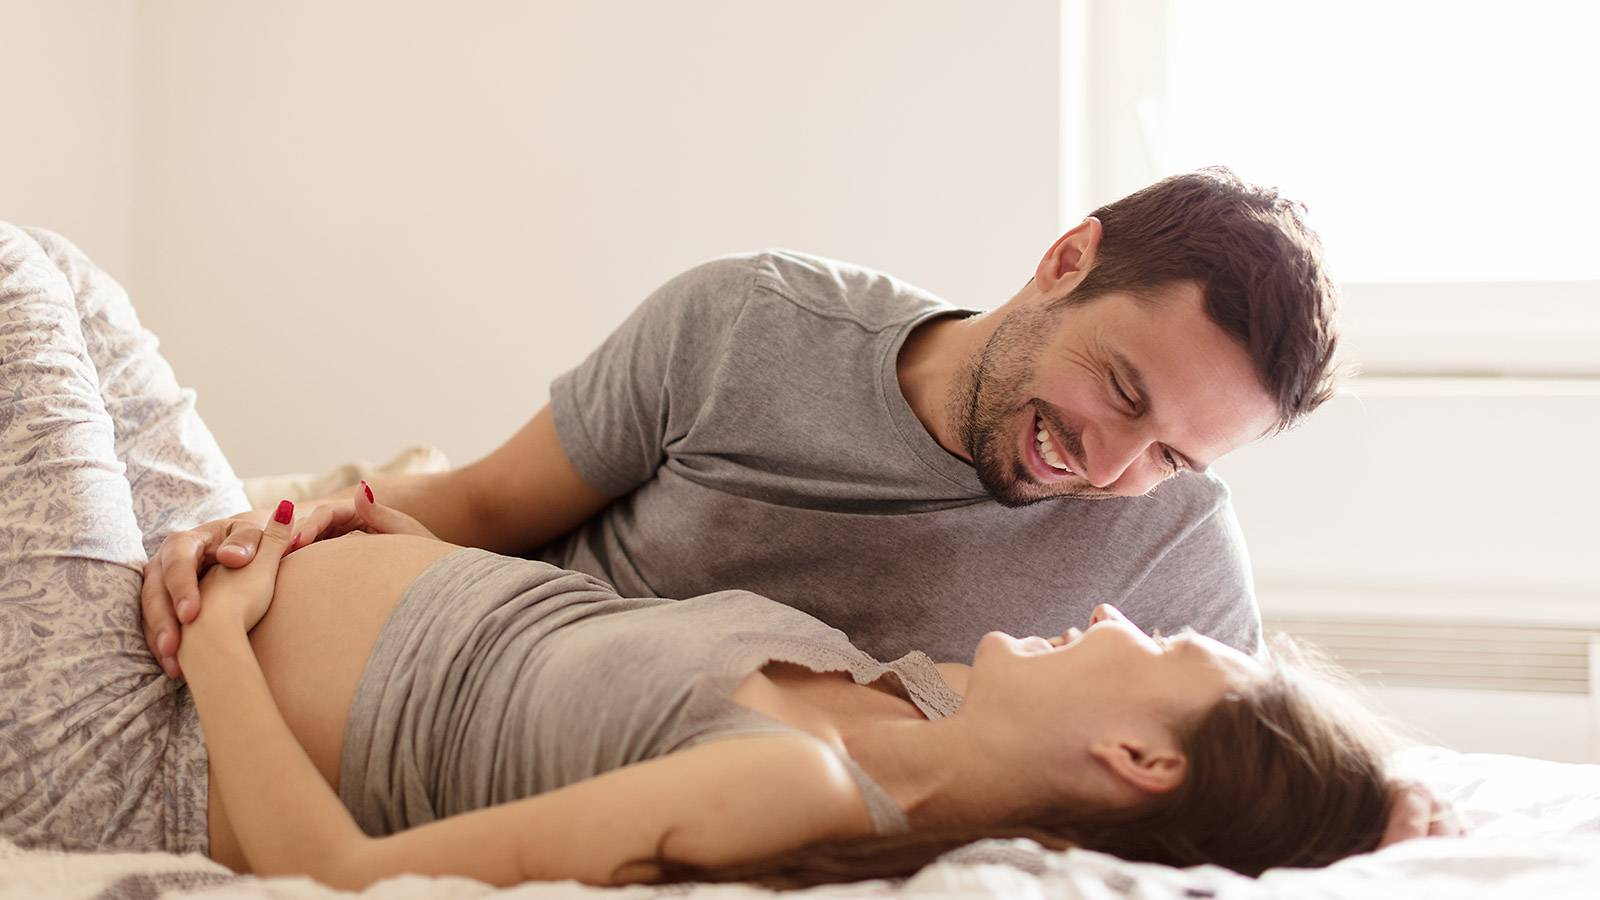 Pregnancy-7-things-husbands-should-know-about-pregnancy-sex-1